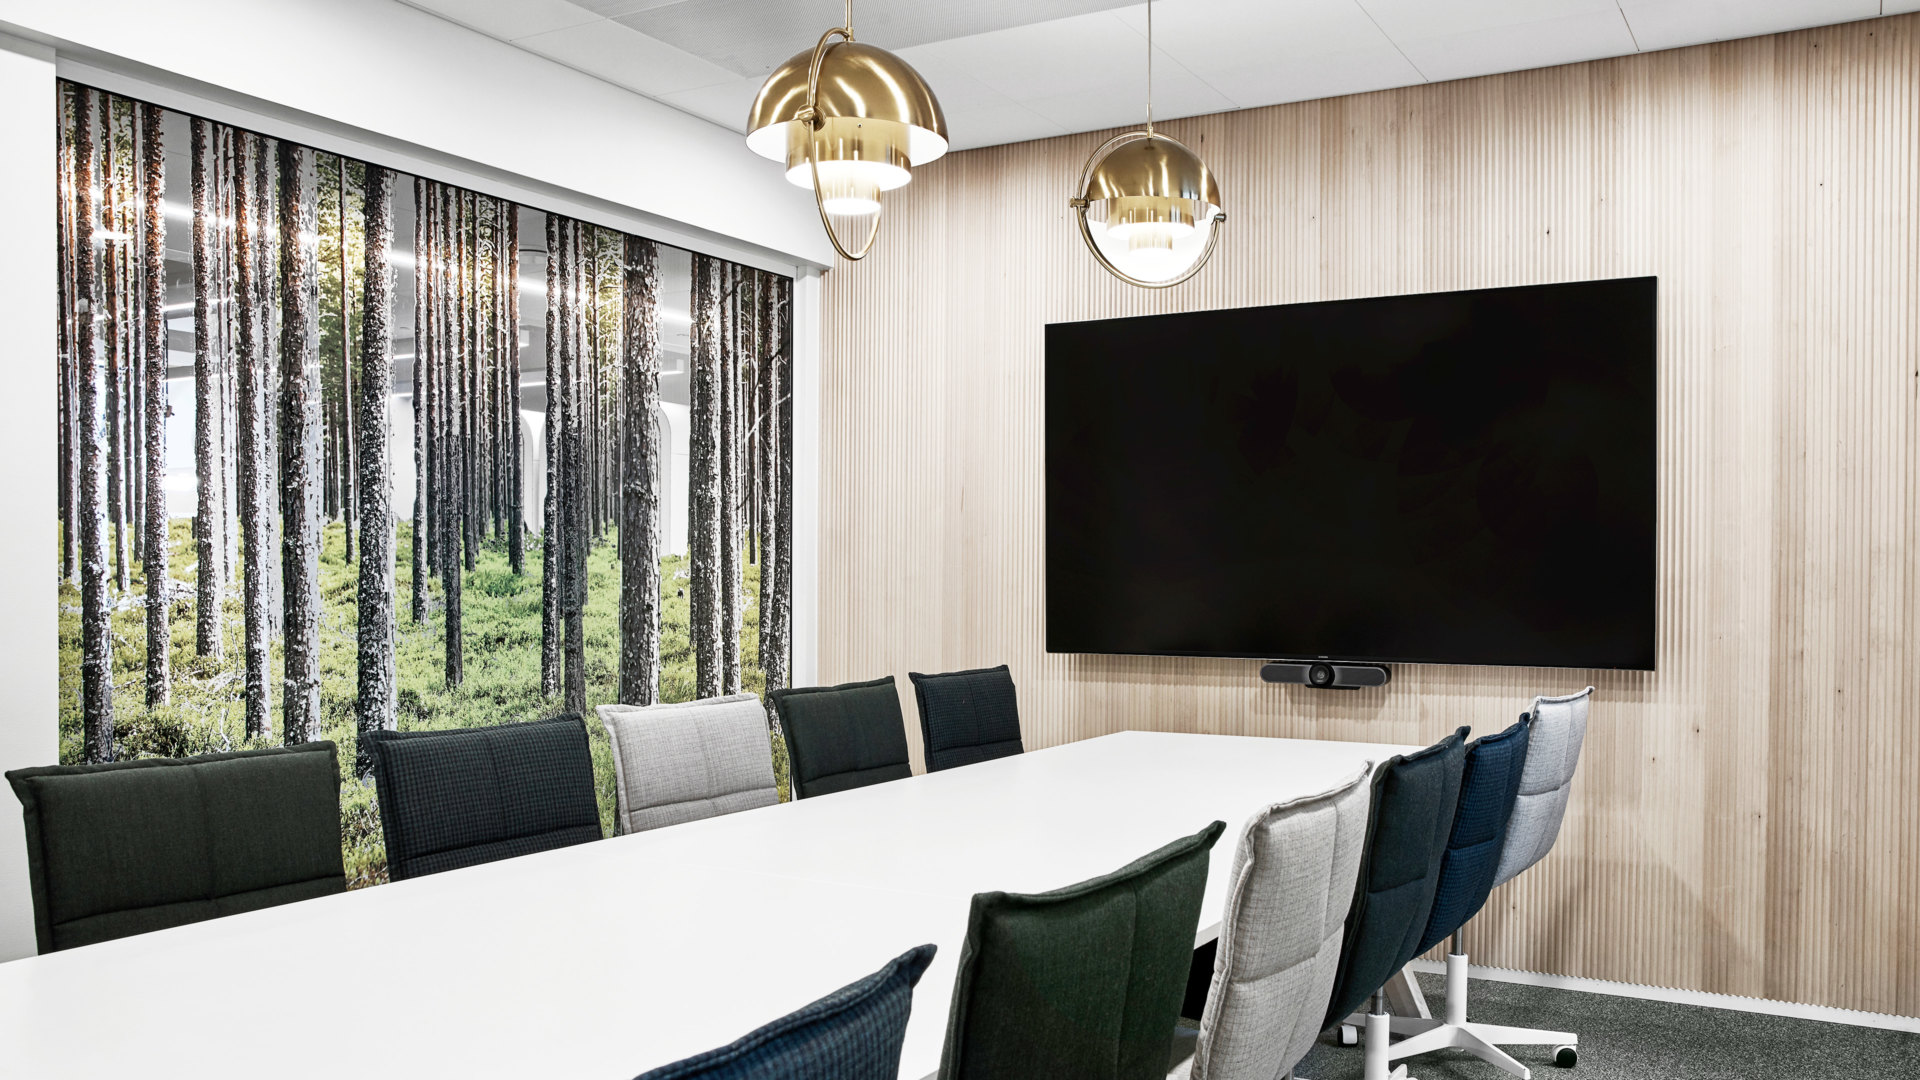 MTK-meeting room-after-renovation-nature-interior architect-Kohina